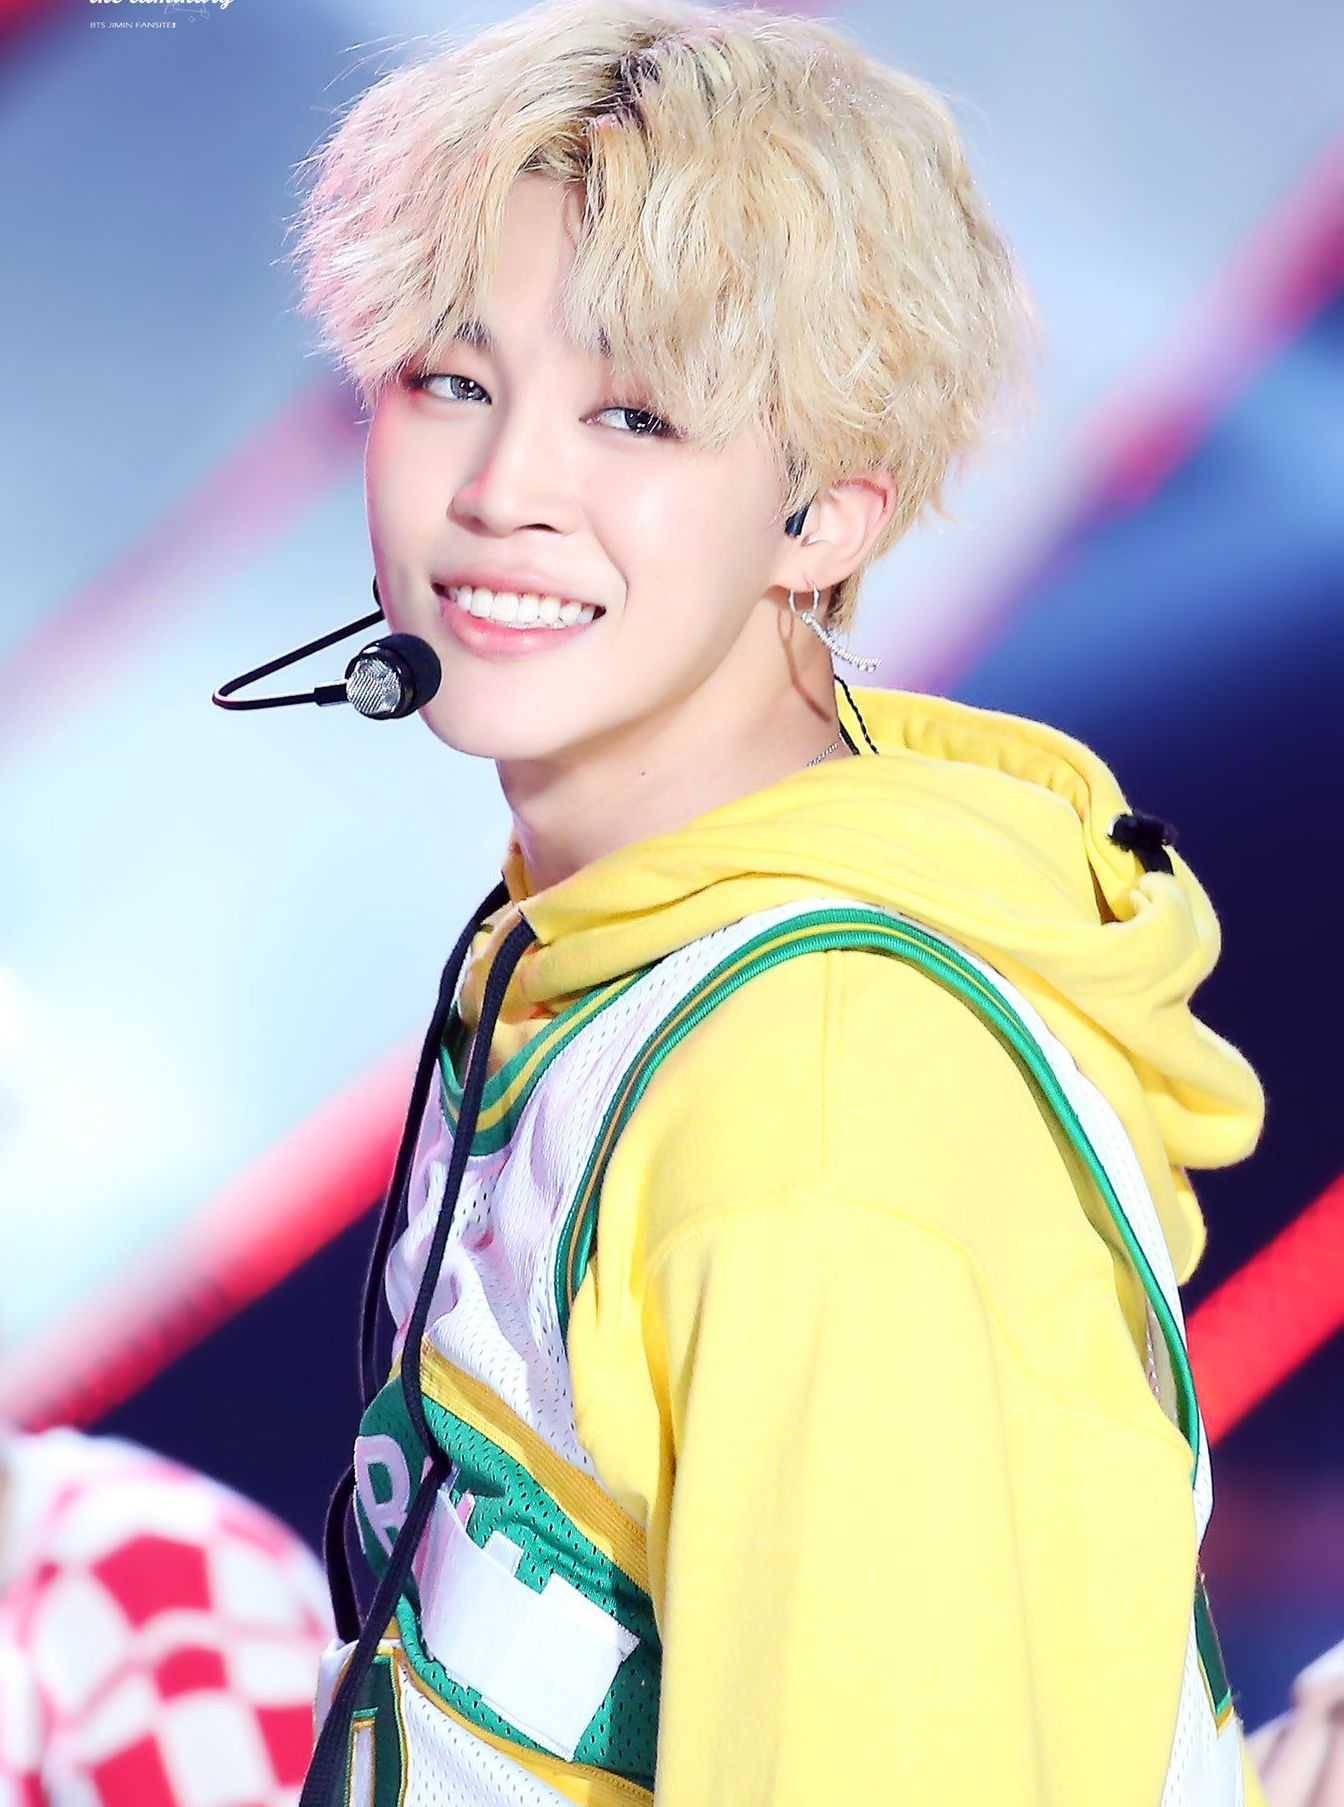 Jimin - Bio, Net Worth, BTS, Band Members, Songs, Albums, Tours, Age